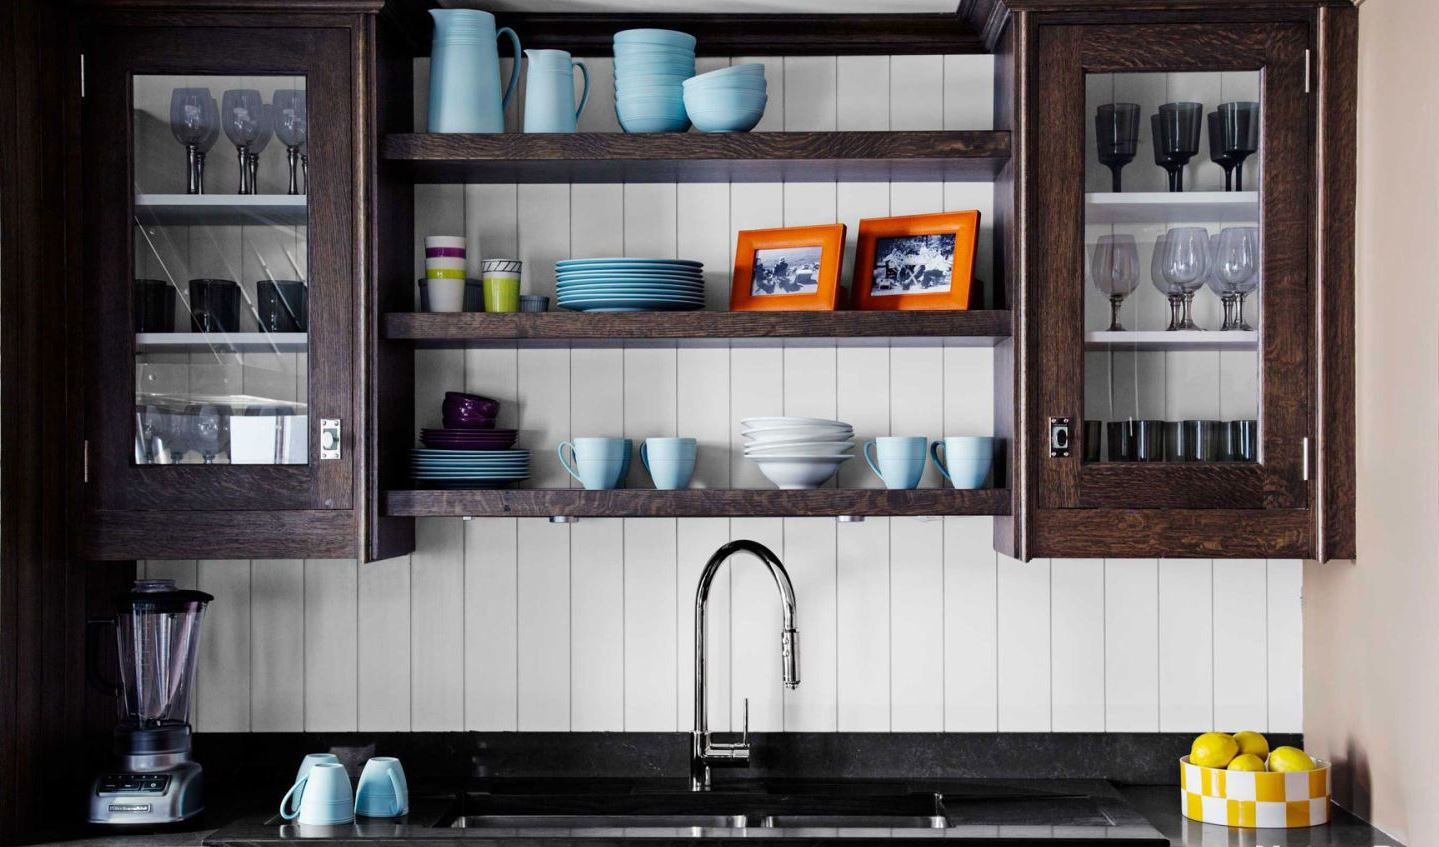 Vertical shiplap backsplash with open shelving